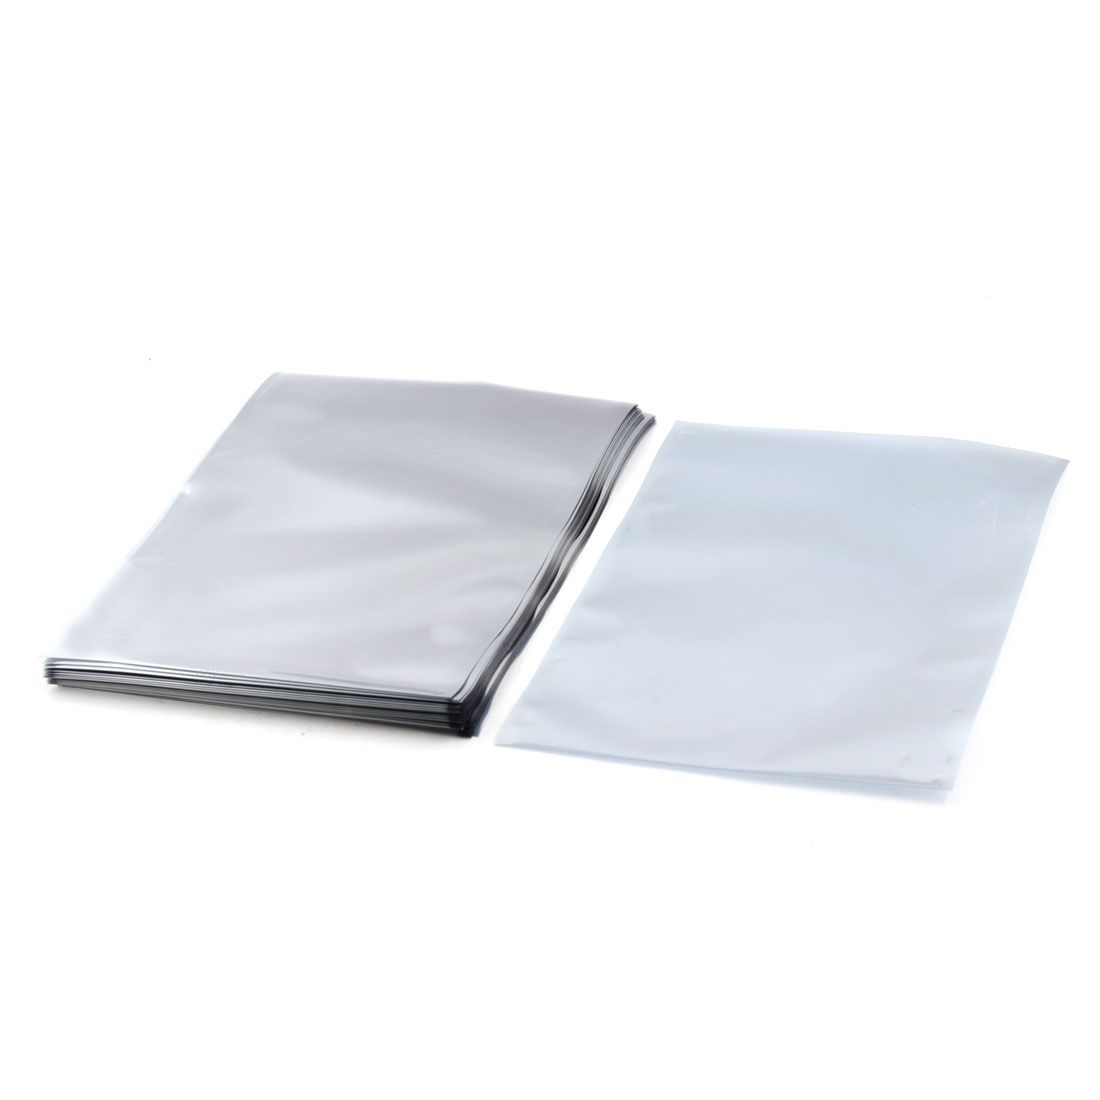 "50Pcs 7"" x 10"" Antistatic Anti Static Shielding Bags Open Top"